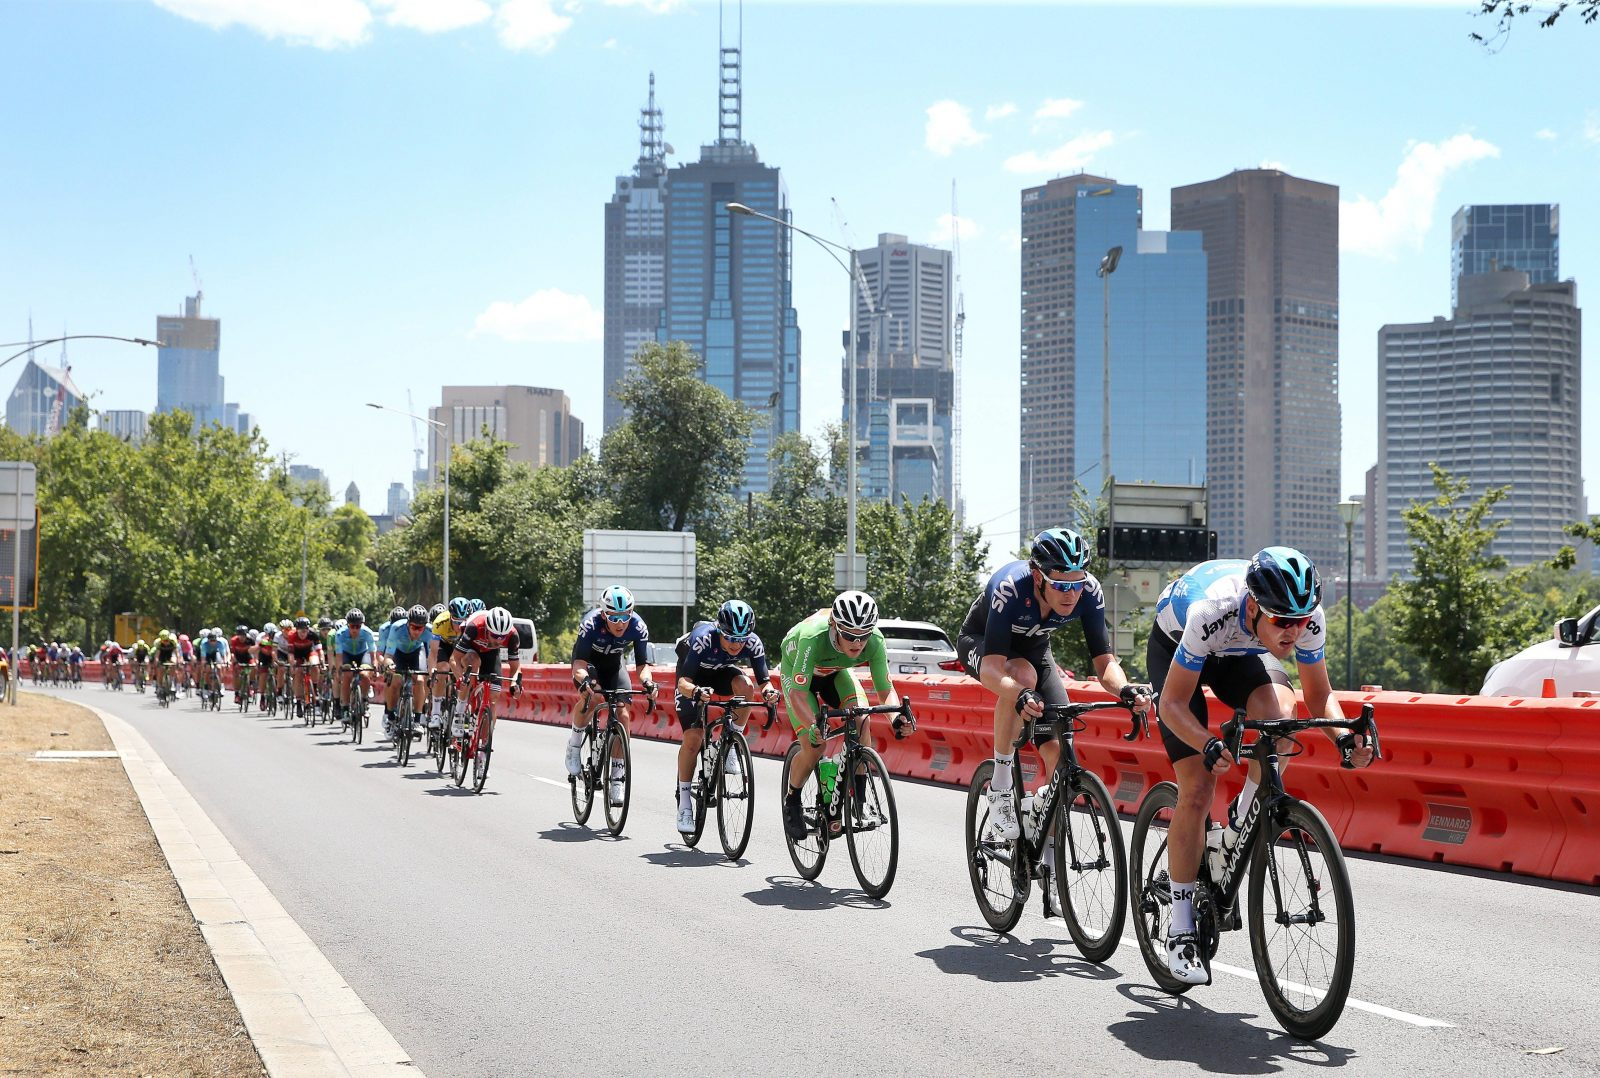 Riders make their way around the Melbourne circuit